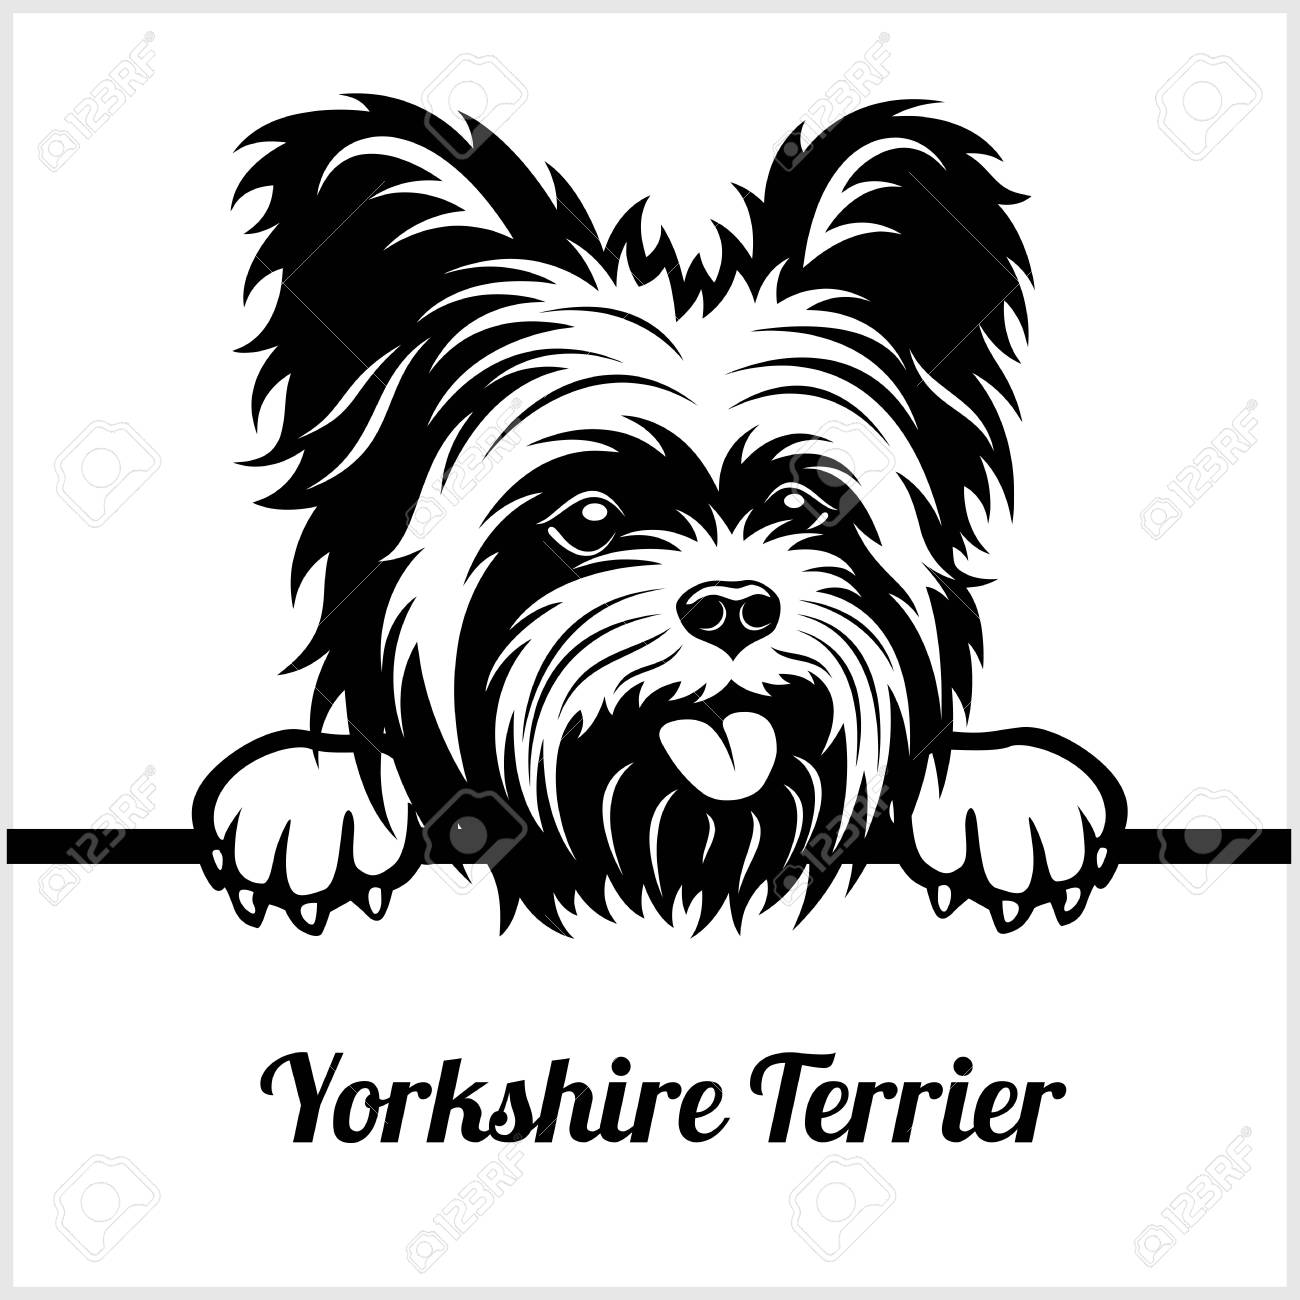 Yorkshire Terrier - Peeking Dogs - - breed face head isolated on white - 118845803